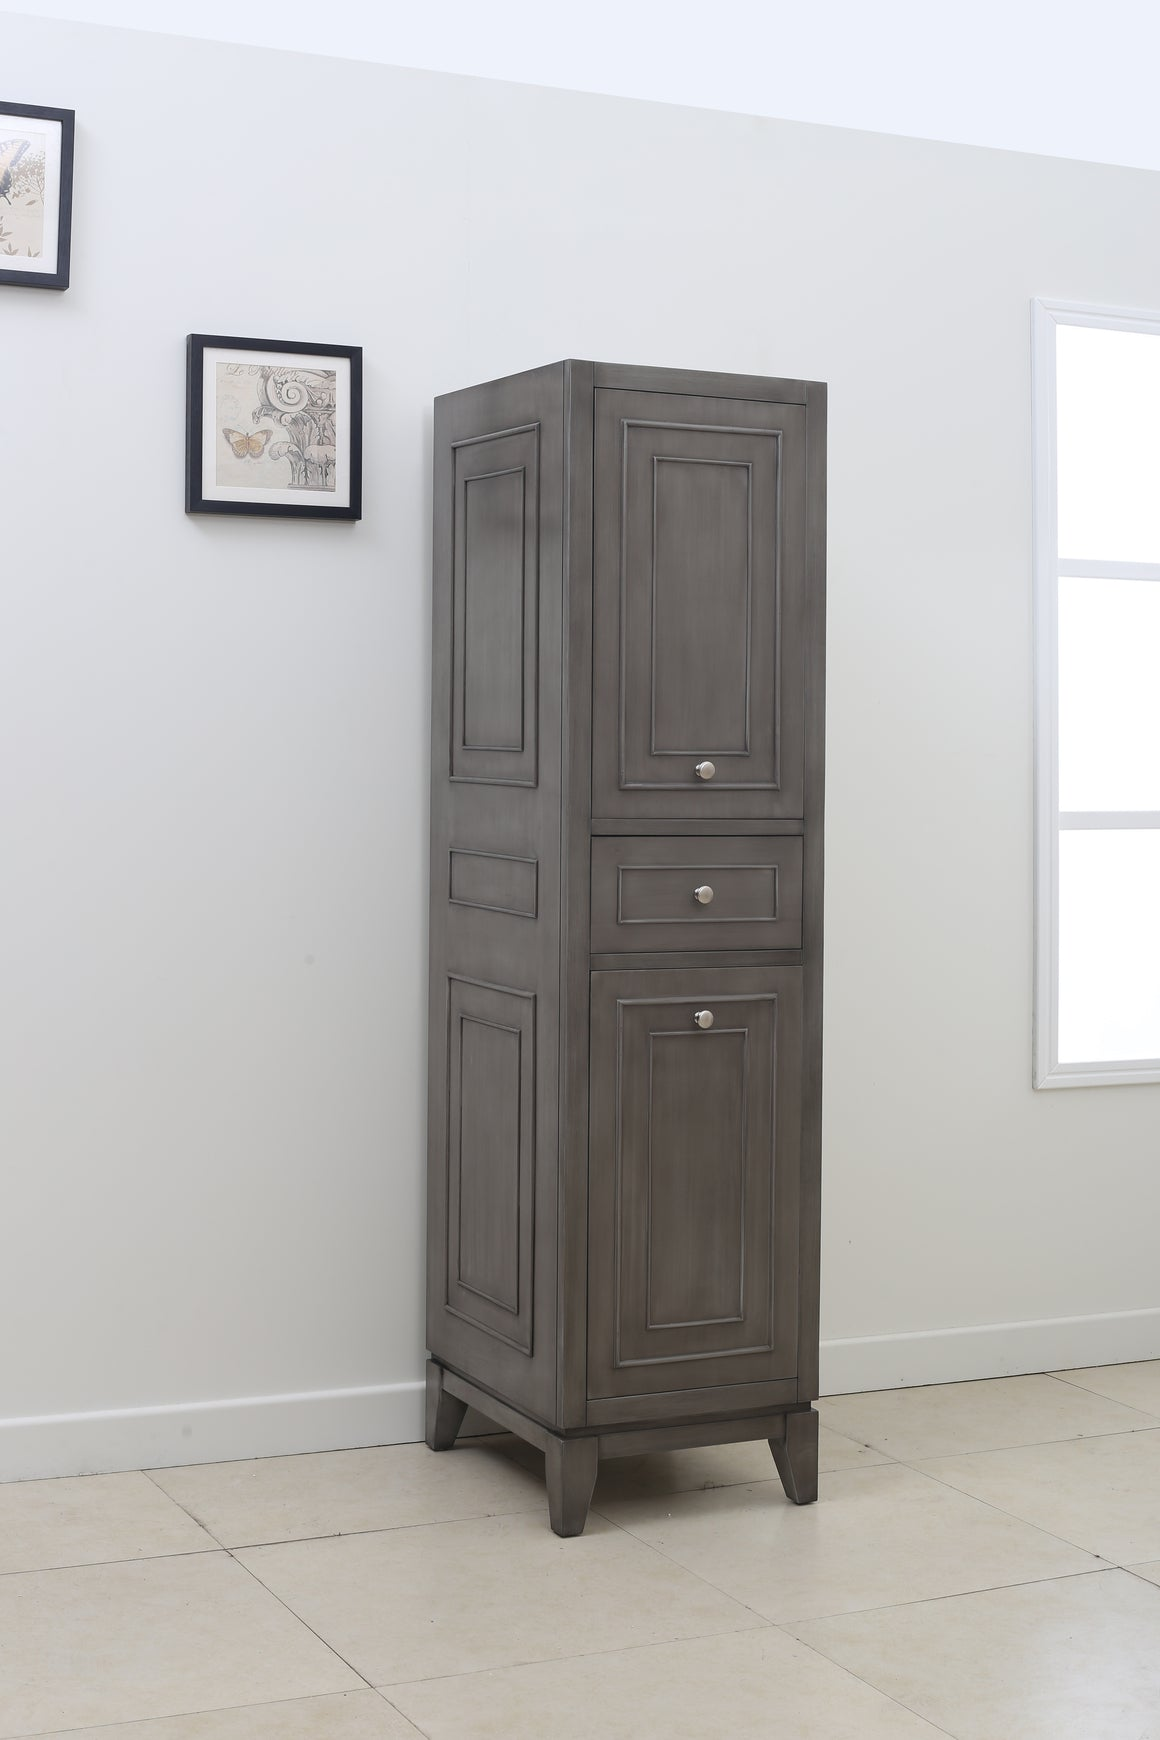 Nottingham Linen Cabinet in Silver Gray